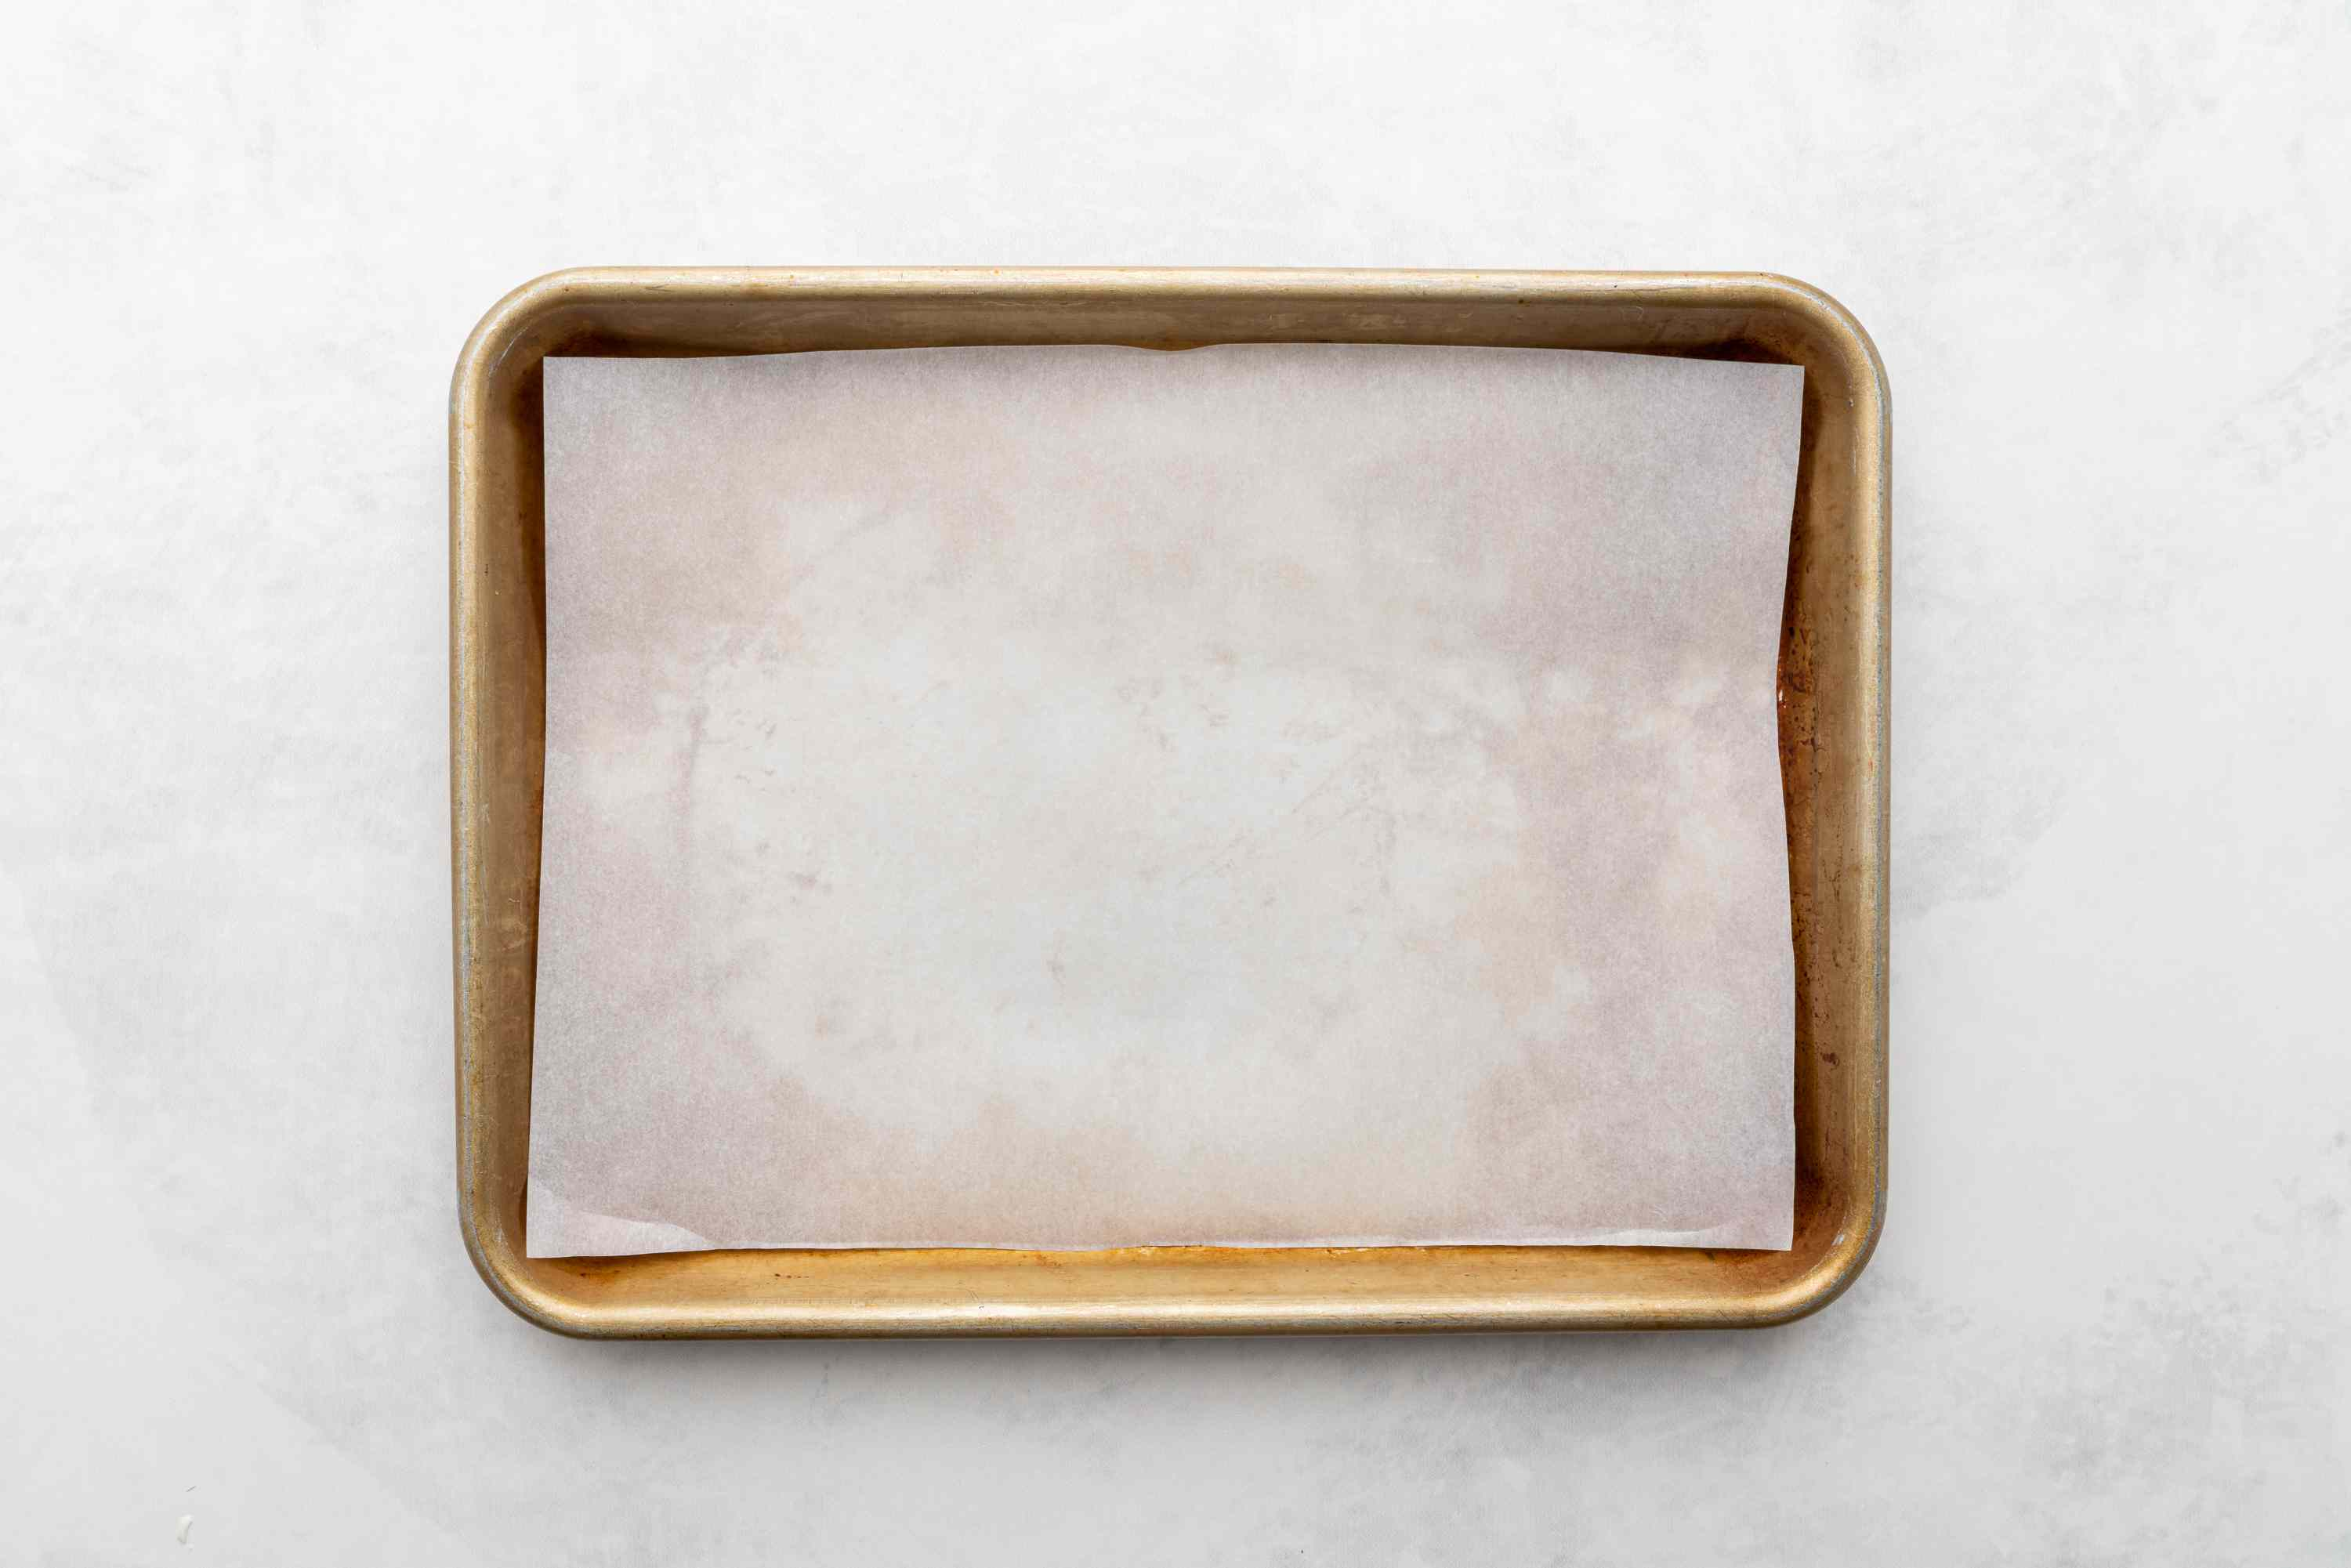 Line a baking sheet with waxed paper